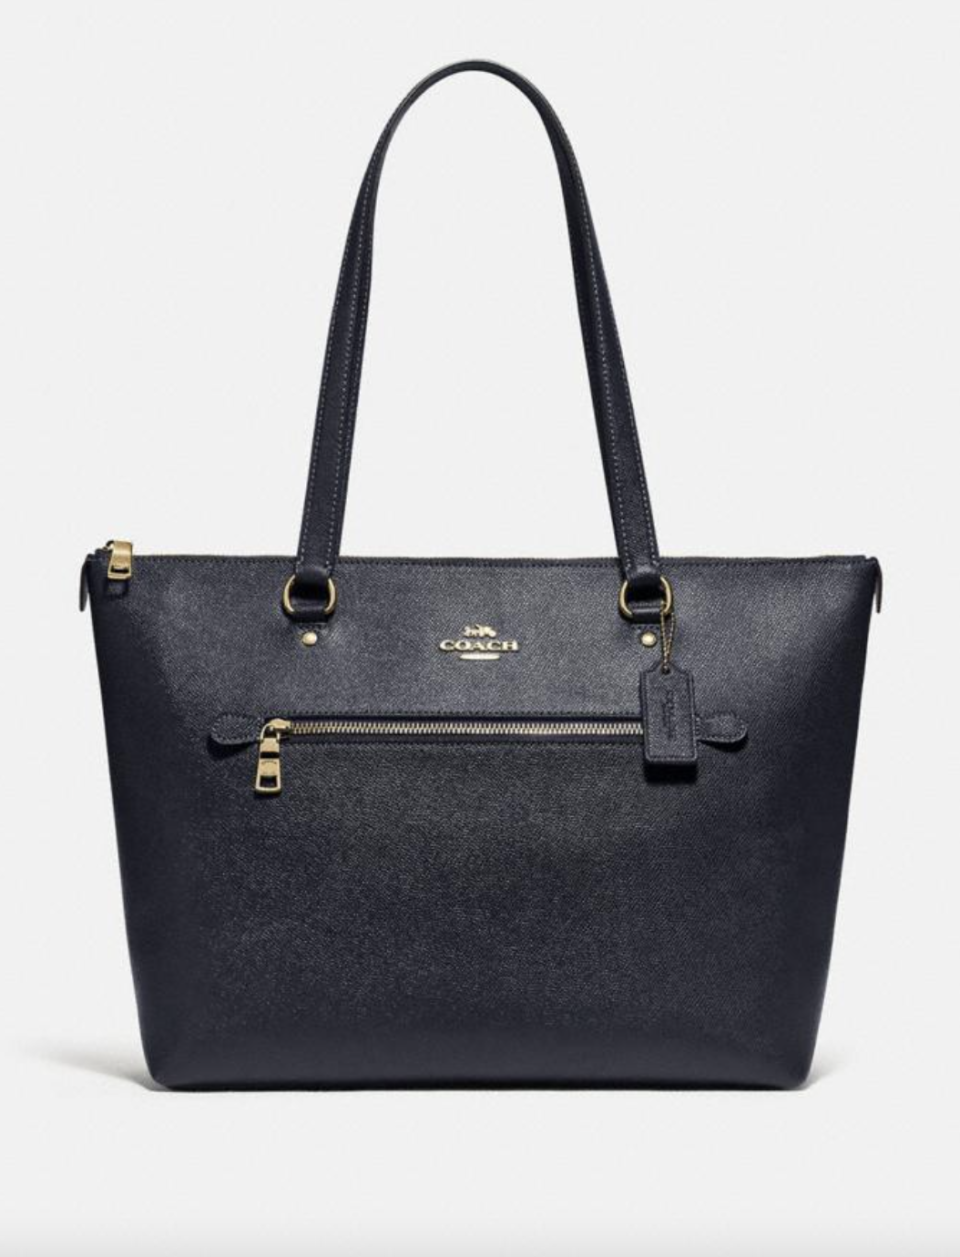 Gallery Tote in Midnight (Photo via Coach Outlet)